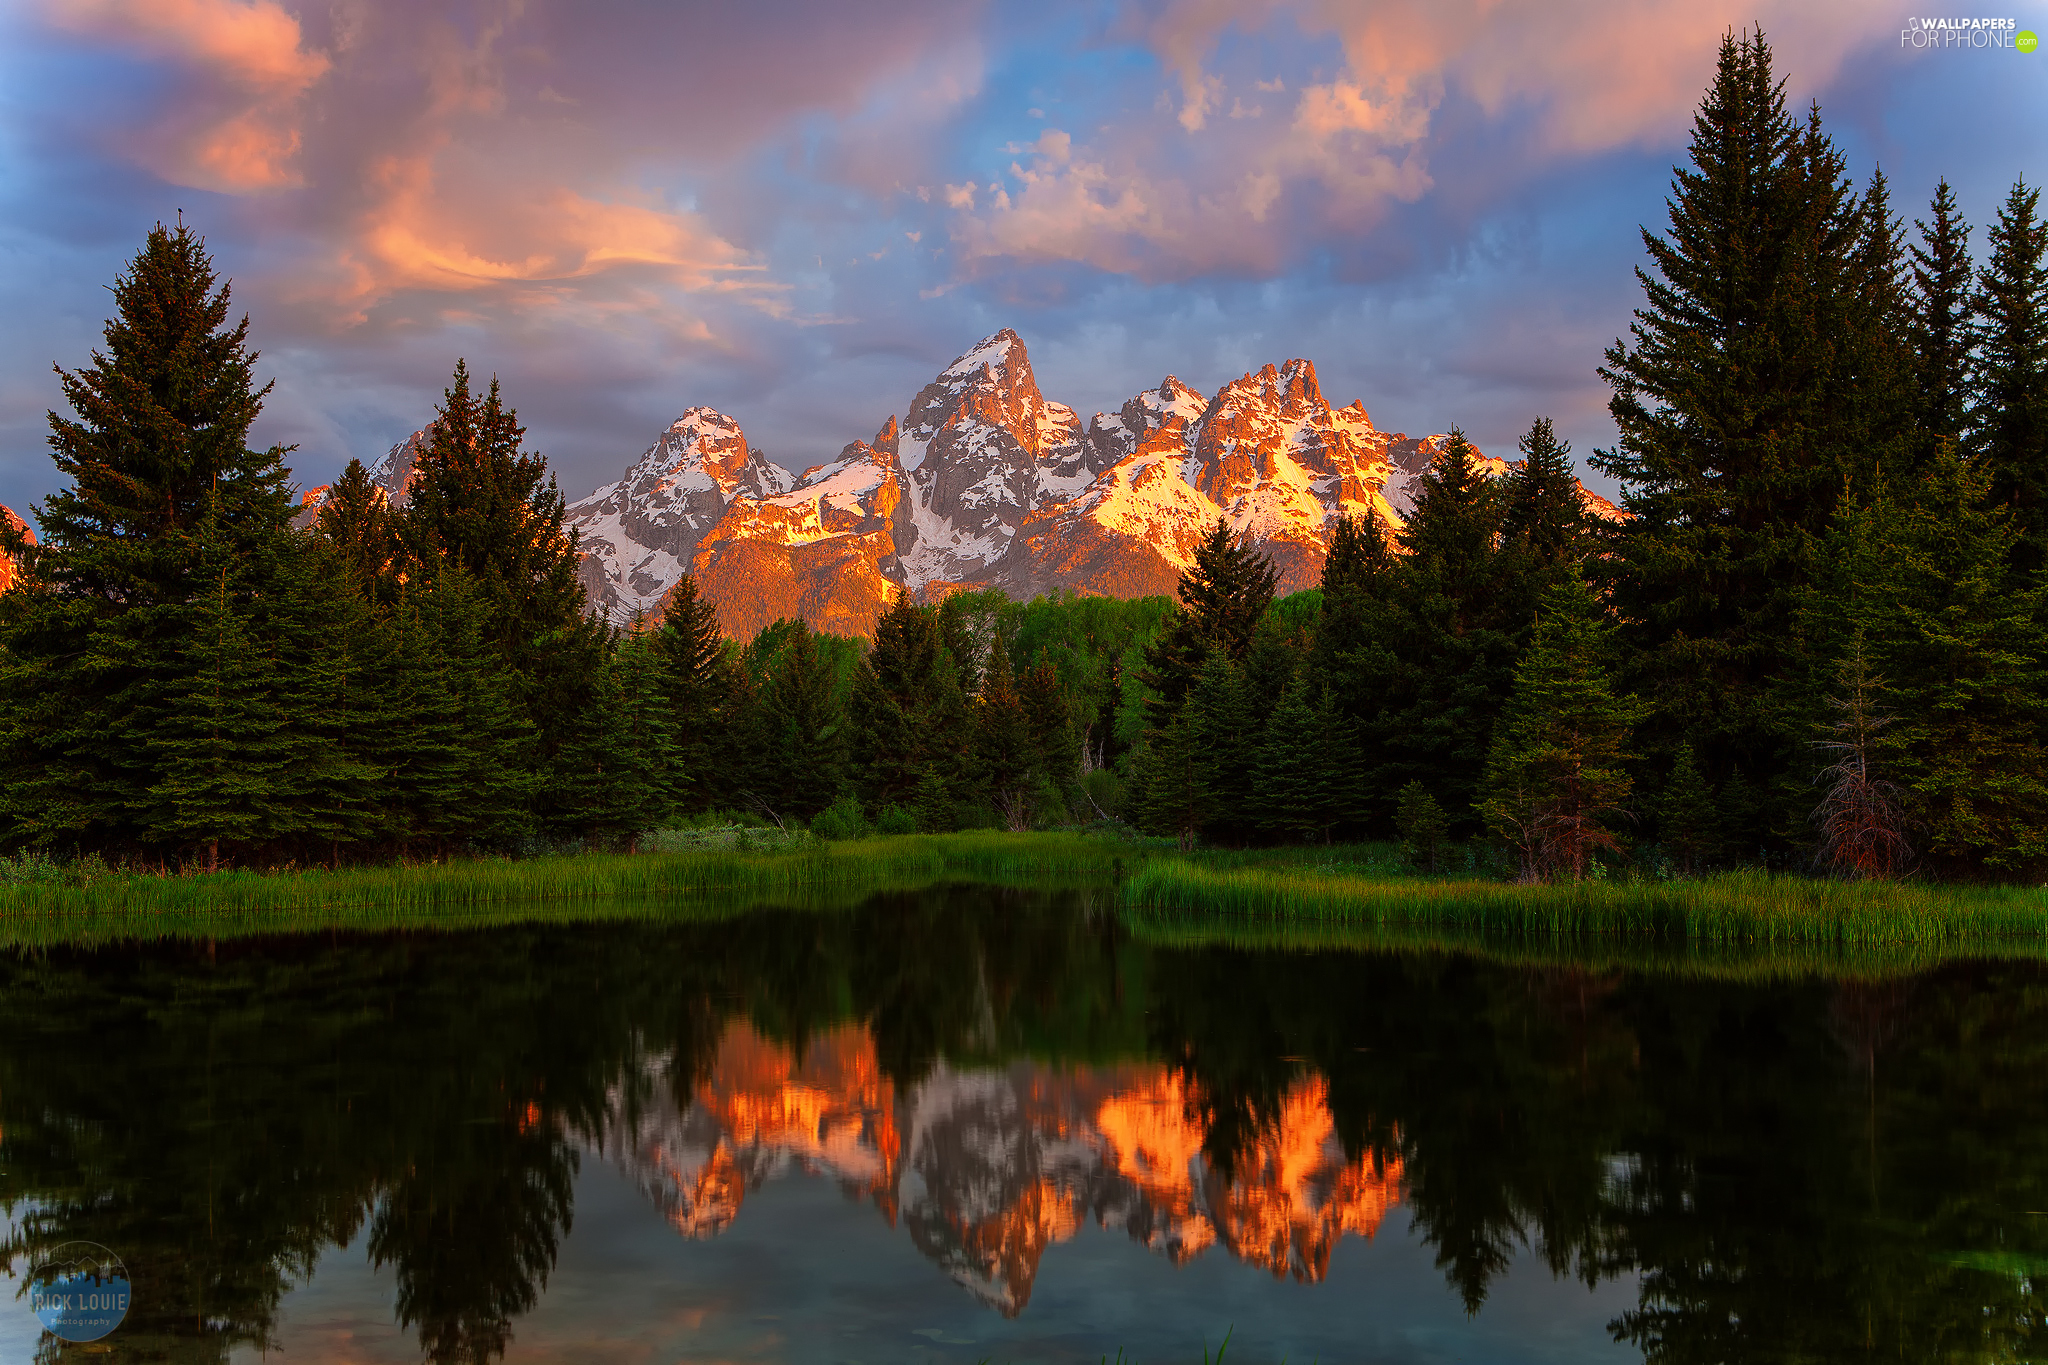 Snake River, Teton Range Mountains, reflection, viewes, trees, The United States, State of Wyoming, Great Sunsets, Grand Teton National Park